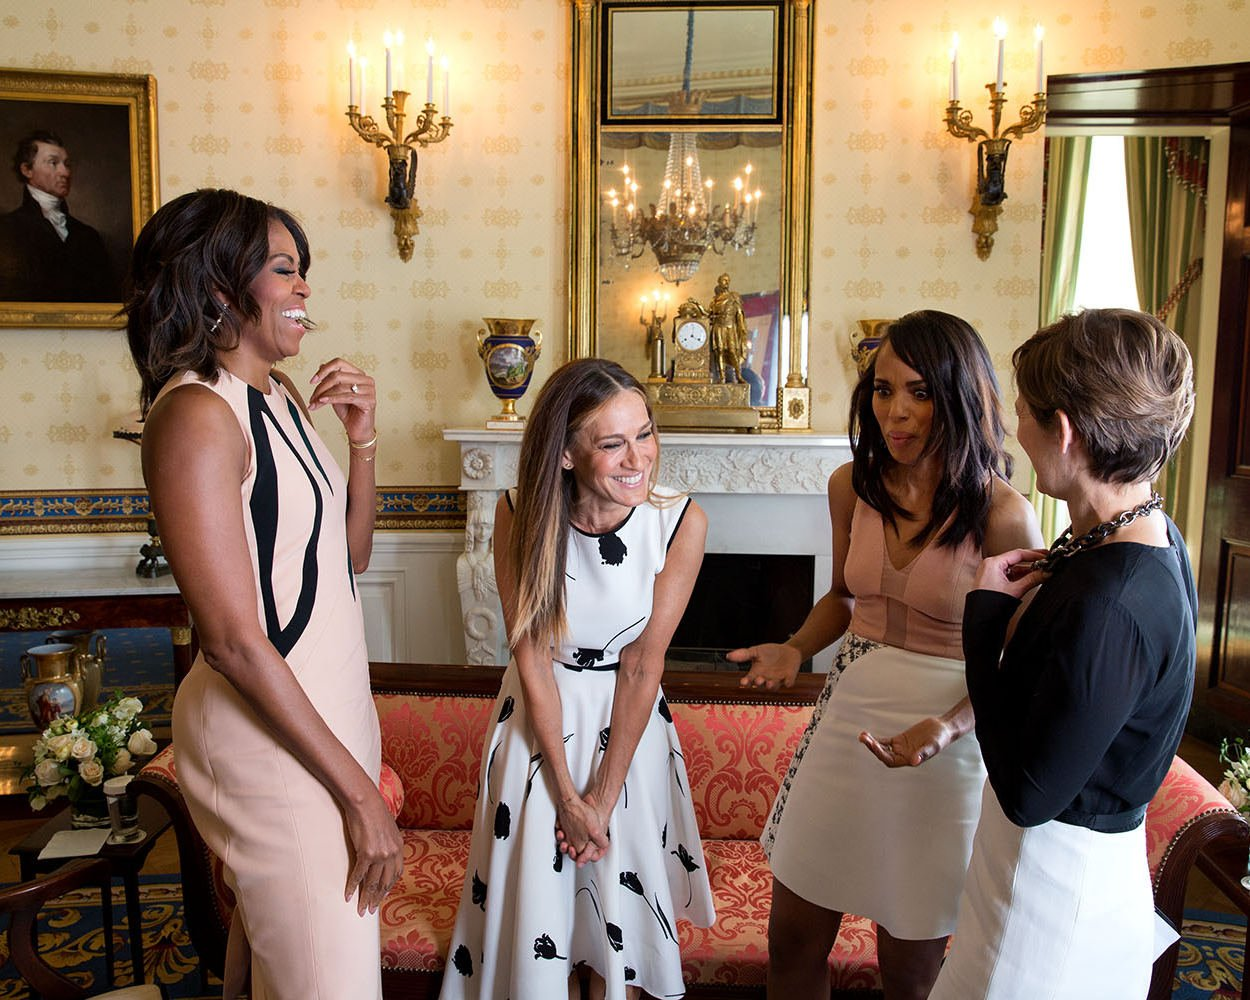 FIRST LADY MICHELLE OBAMA w/ SARAH JESSICA PARKER BLUE ROOM 8X10 PHOTO (ZY-342)